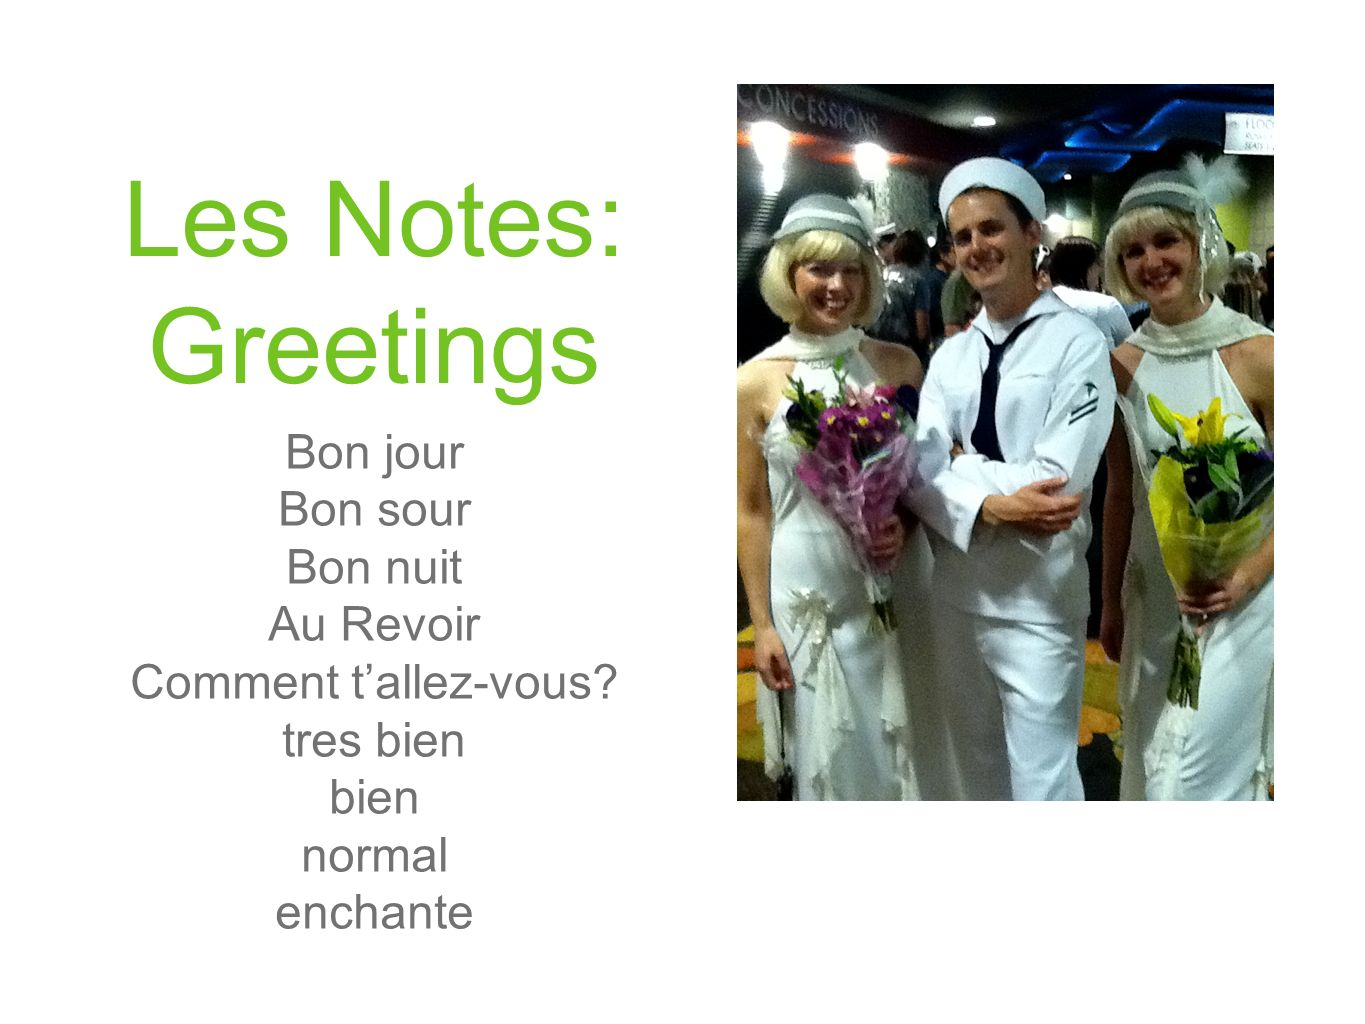 Les Notes: Greetings Bon jour Bon sour Bon nuit Au Revoir